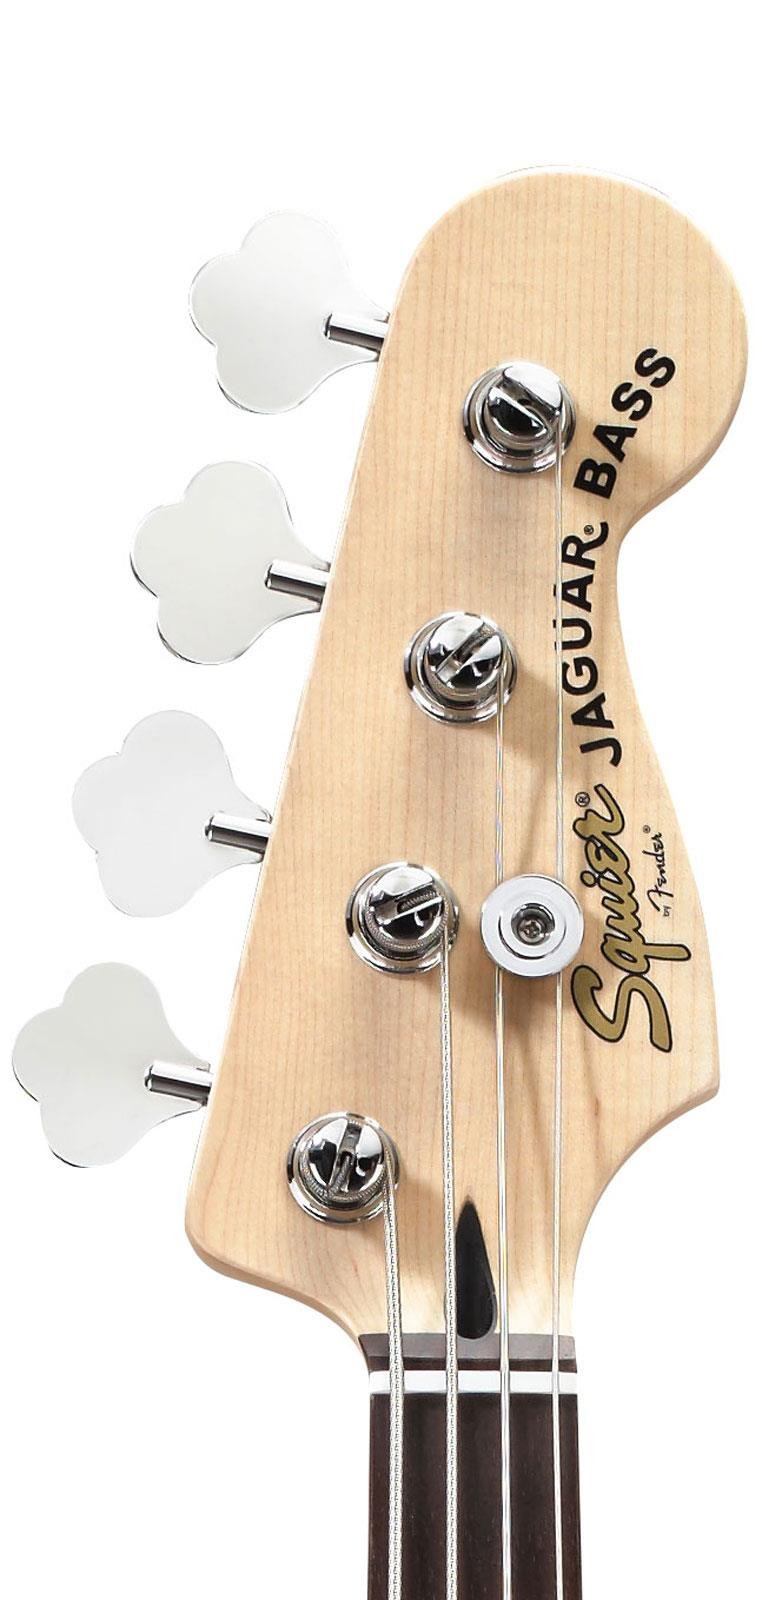 Amazing Jaguar Bass Wiring Diagram Images - Electrical and Wiring ...